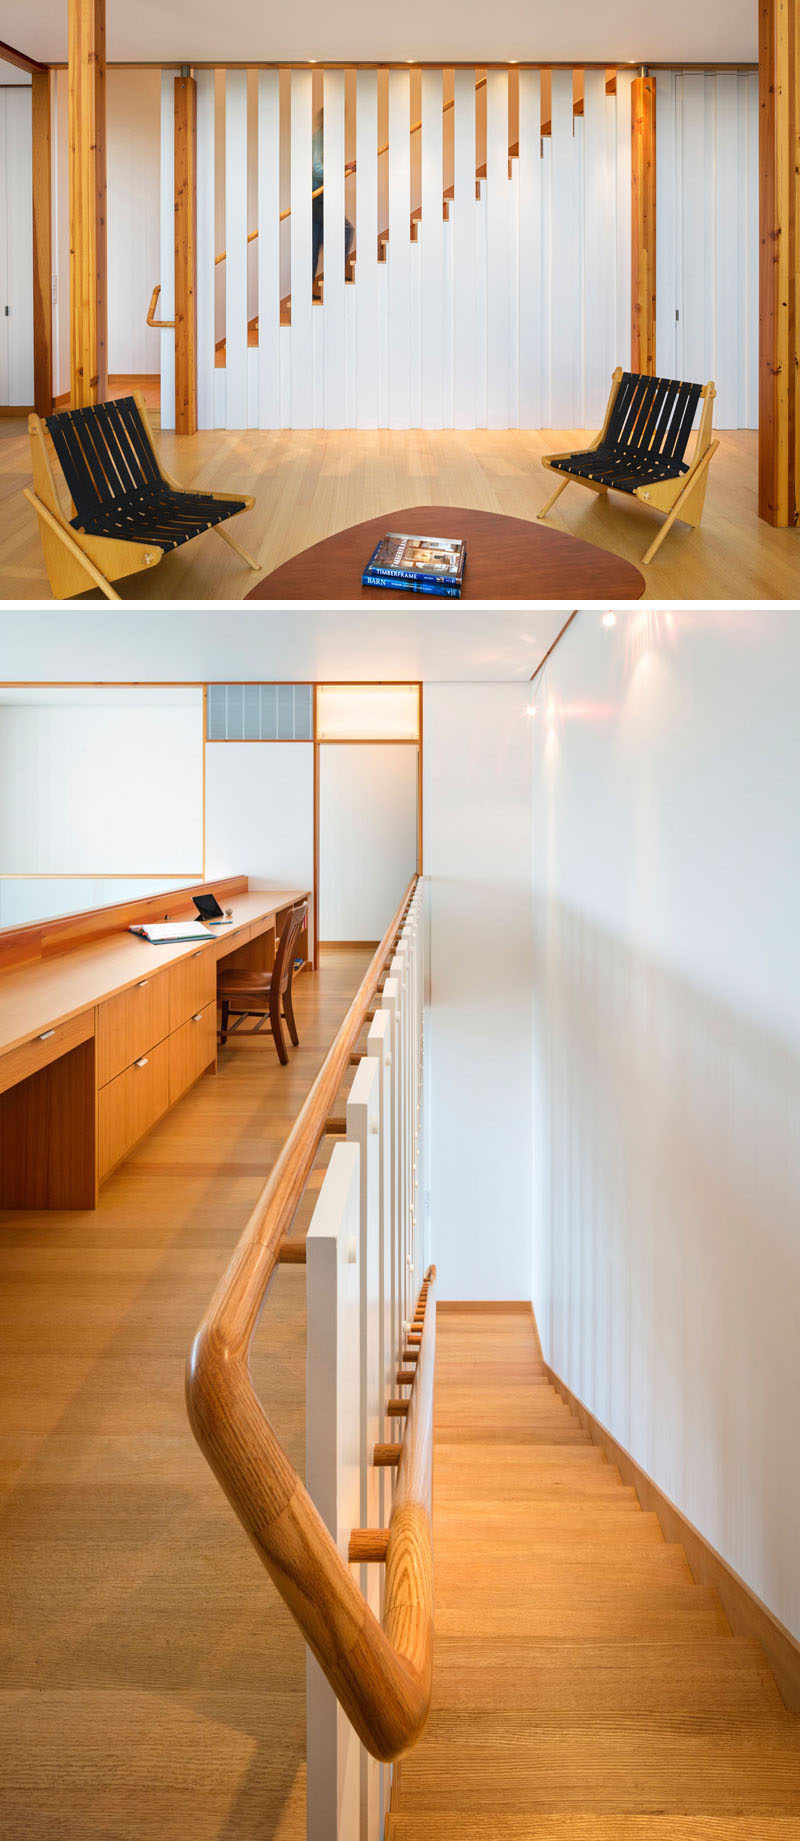 Wood has been used throughout the interior of this modern farmhouse to create a contrast with the mostly white interior. Stairs lead up to the second floor of the farmhouse, and at the top of the stairs, there's a home office area with a long built-in wood desk. #Wood #Desk #InteriorDesign